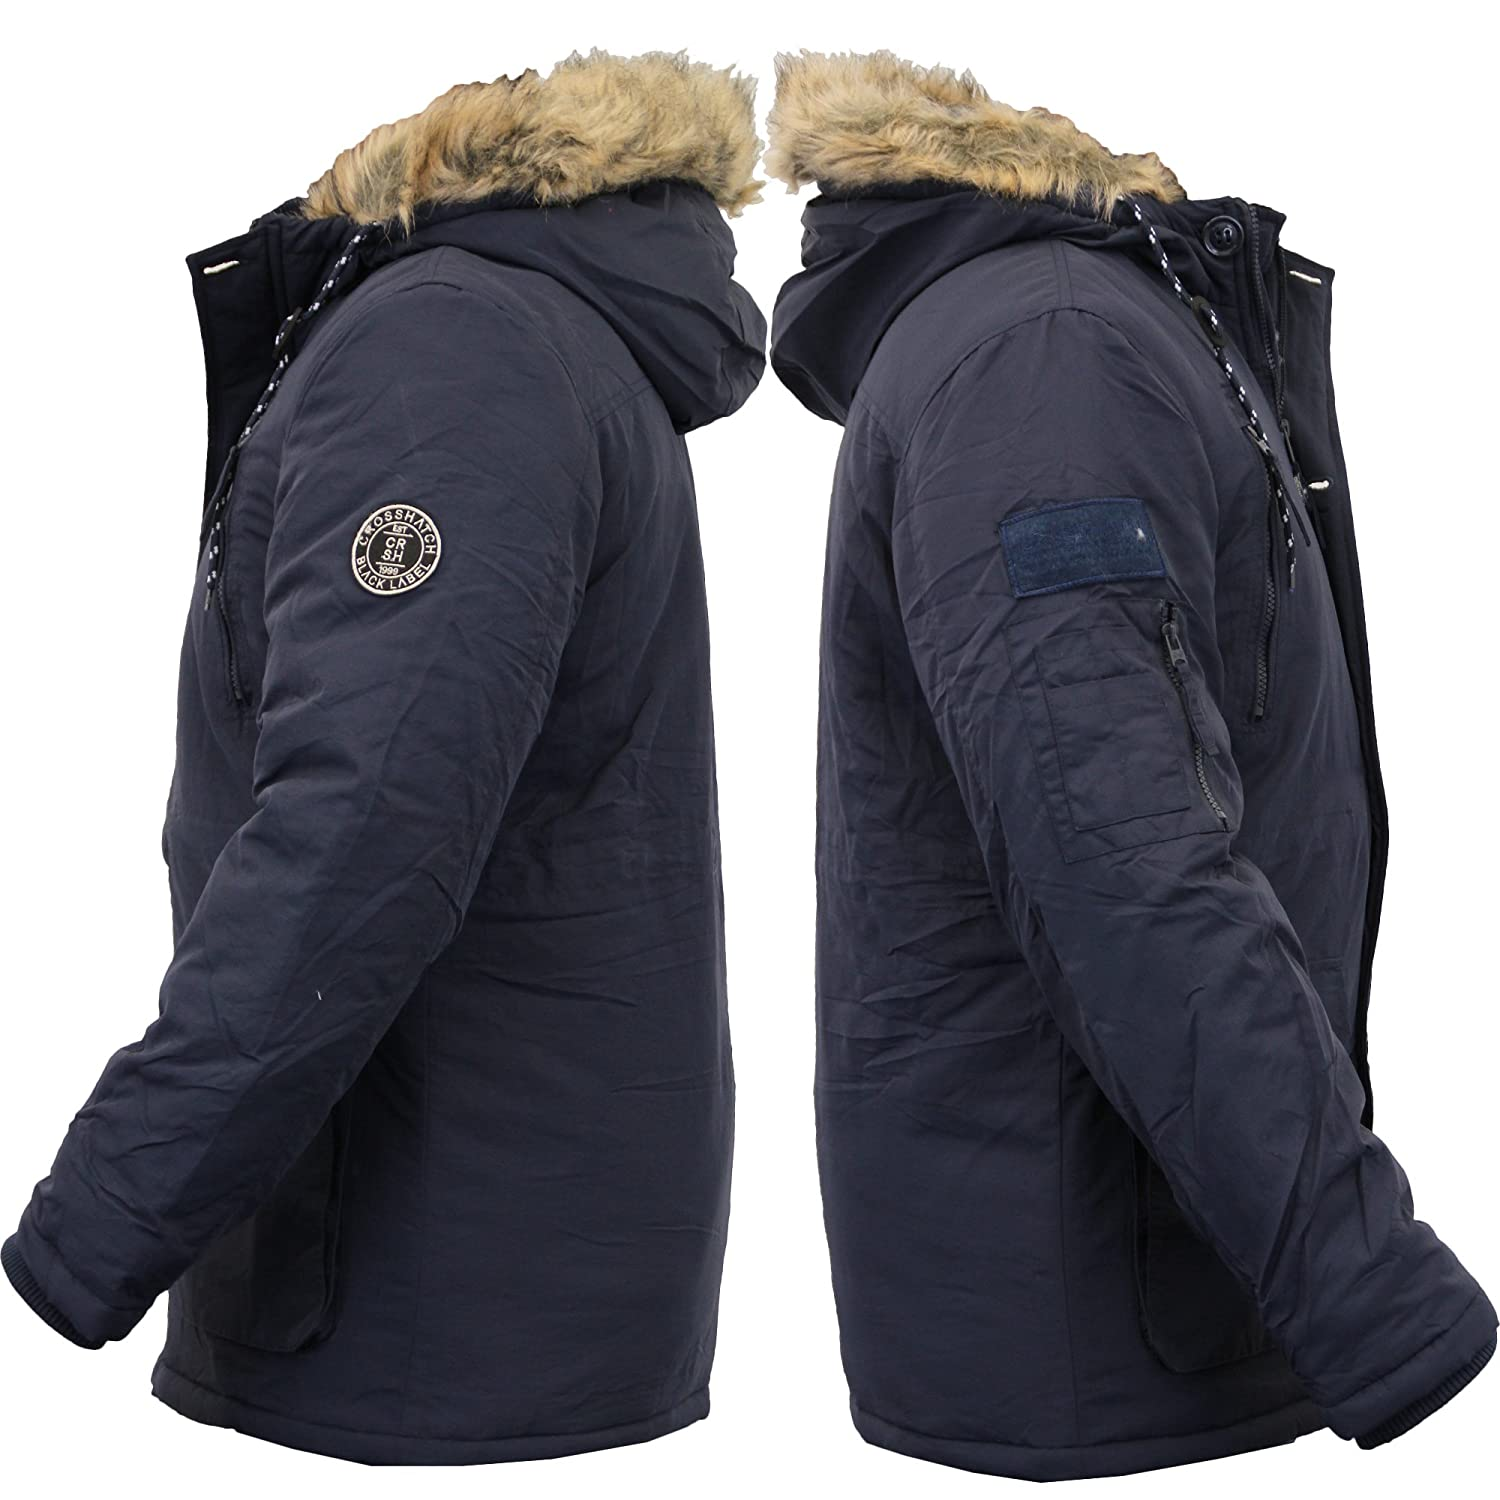 Mens Winter Jackets  Outdoor Coats  Mountain Warehouse